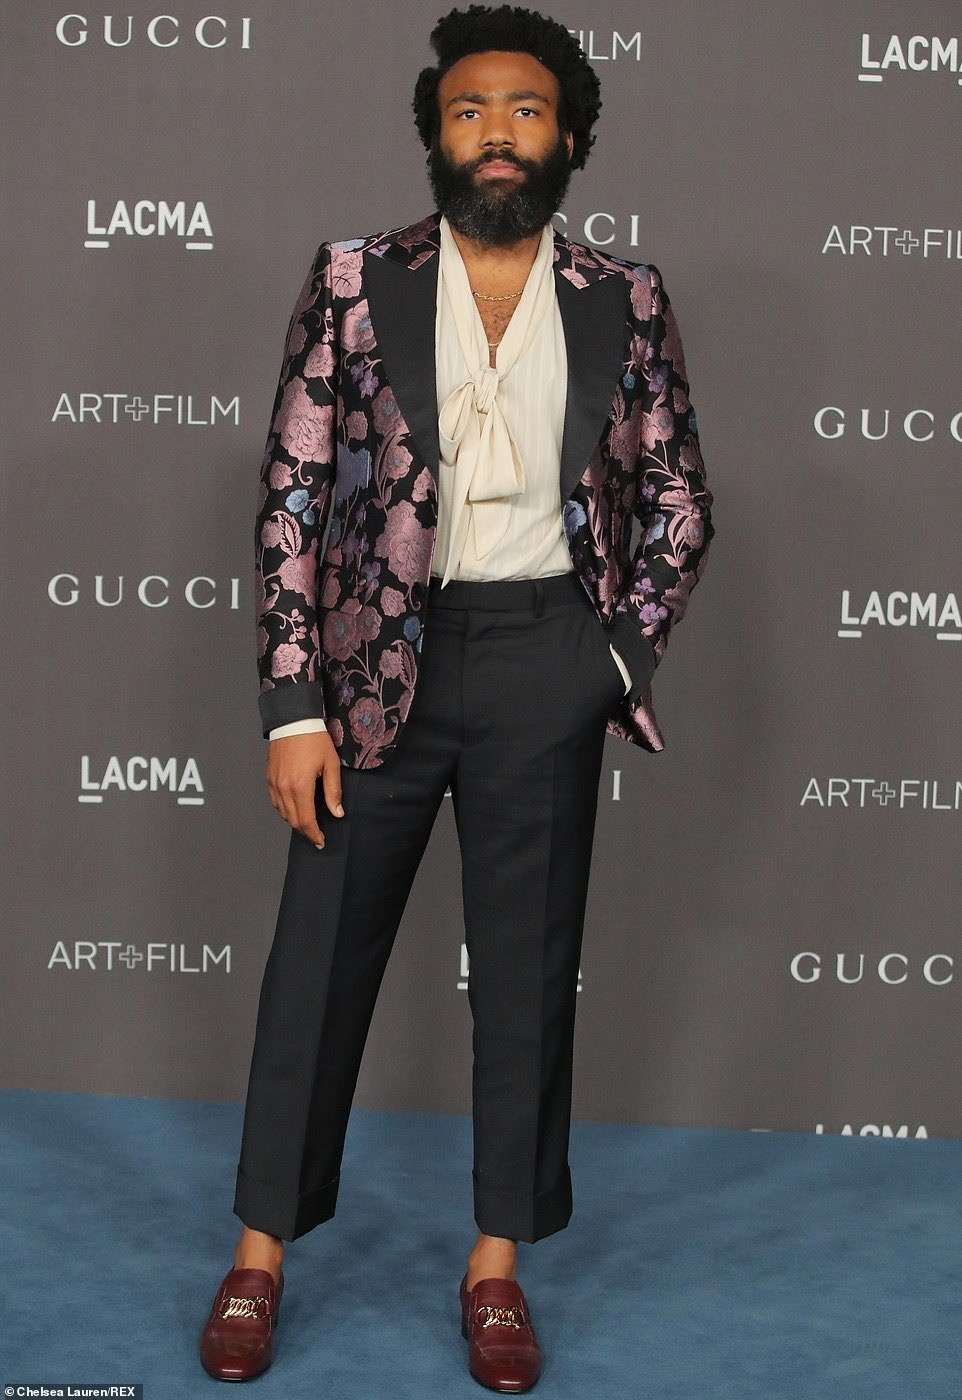 donald-glover-in-gucci-2019-lacma-art-and-film-gala